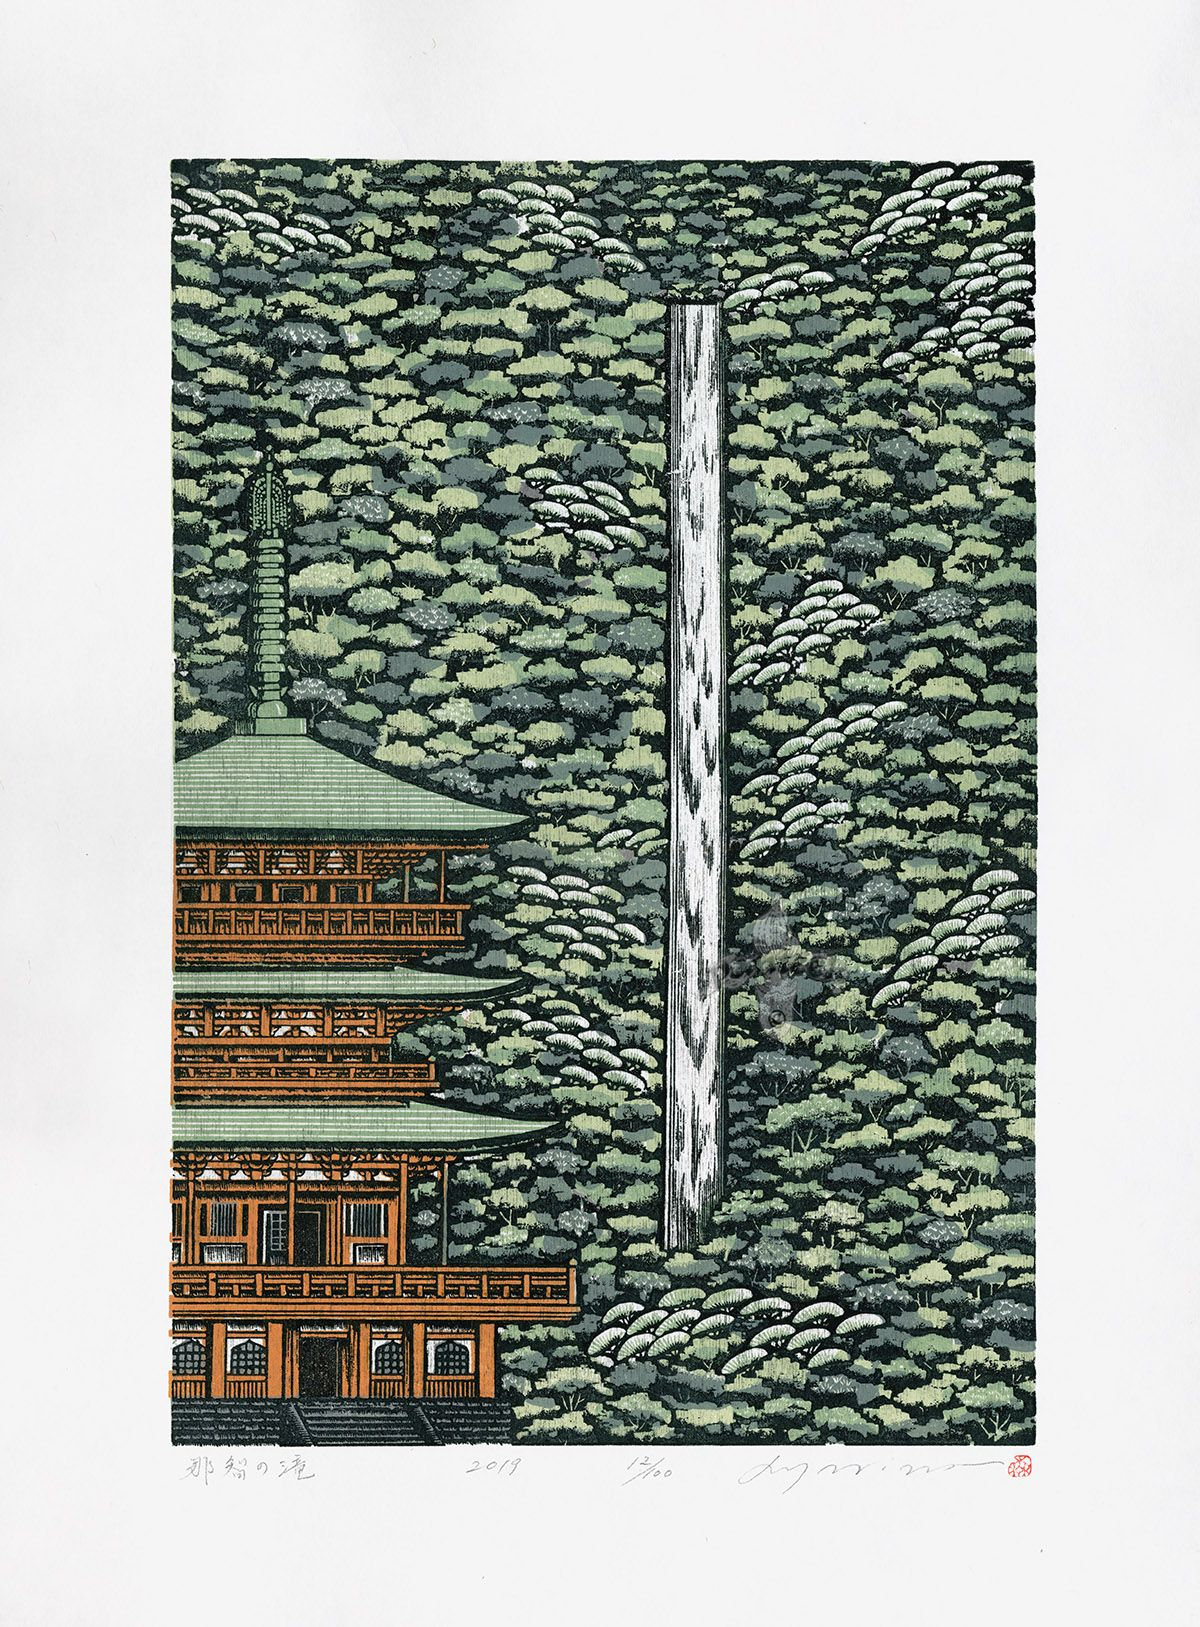 Nachi Falls 2019 12 100 23 By 16 5 8 Inches Signed In Pencil And